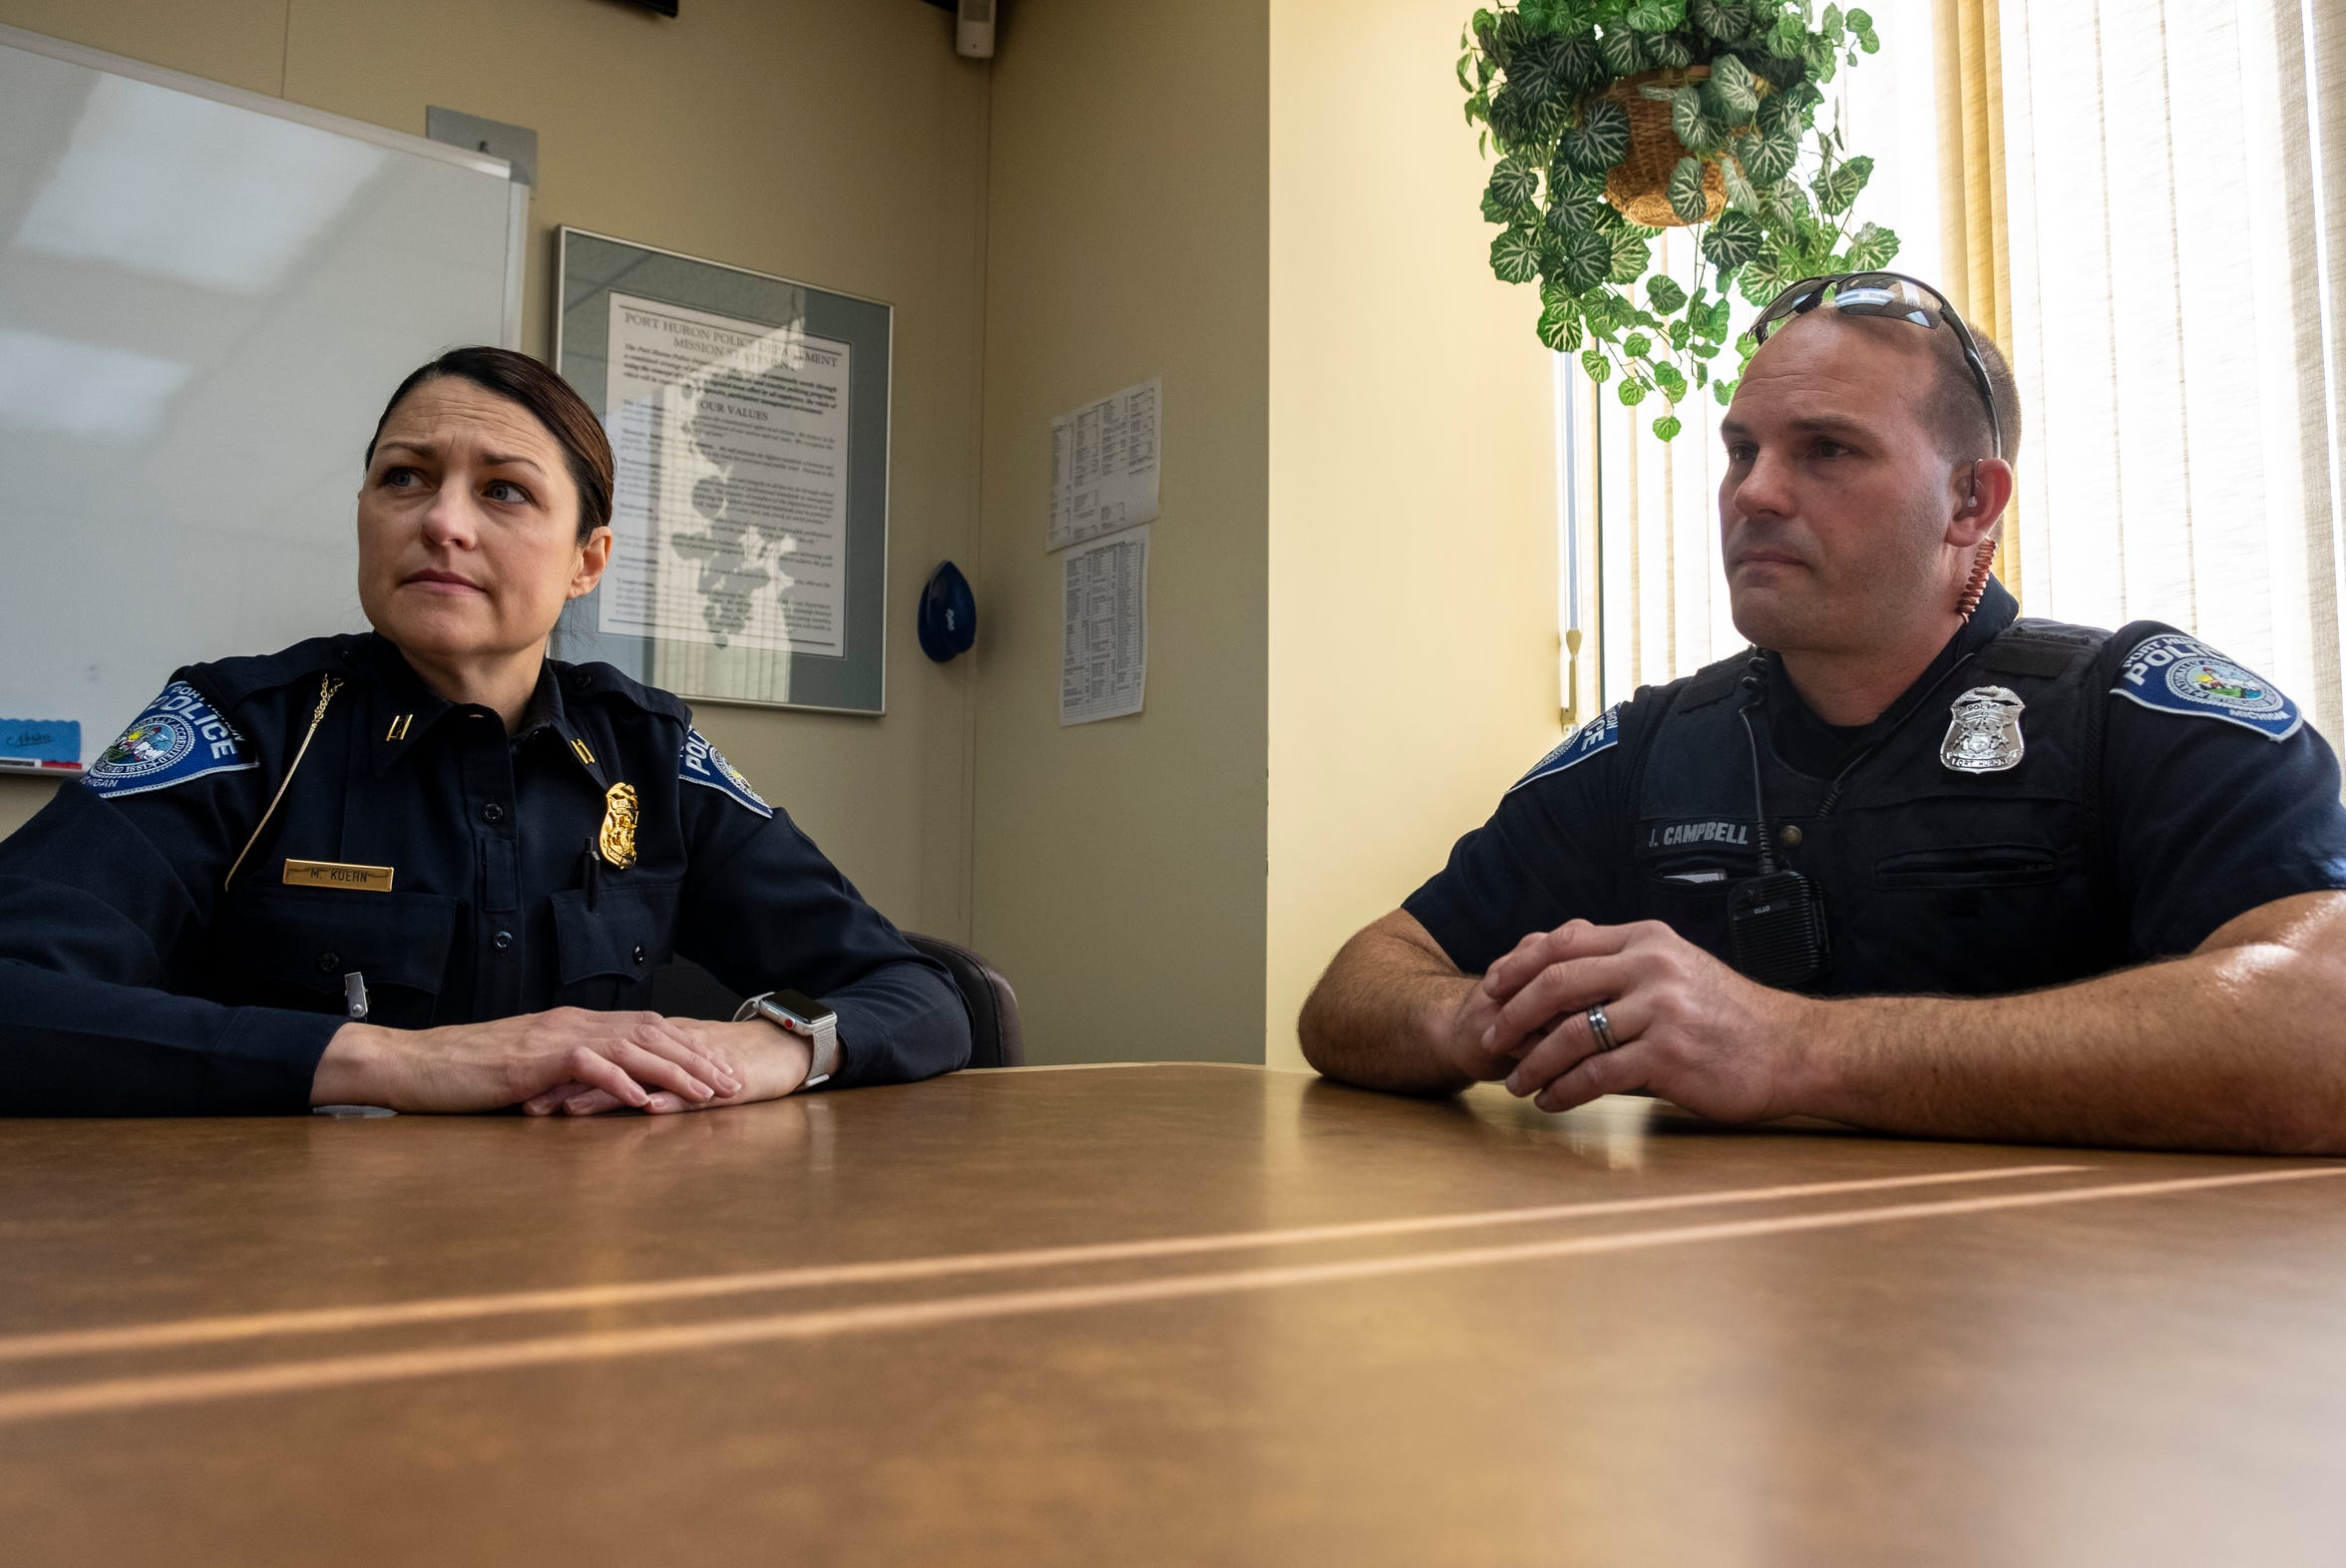 Port Huron Police Capt. Marcy Kuehn, left, and Officer Jim Campbell talk in one of the department's conference rooms Wednesday, May 8, 2019.